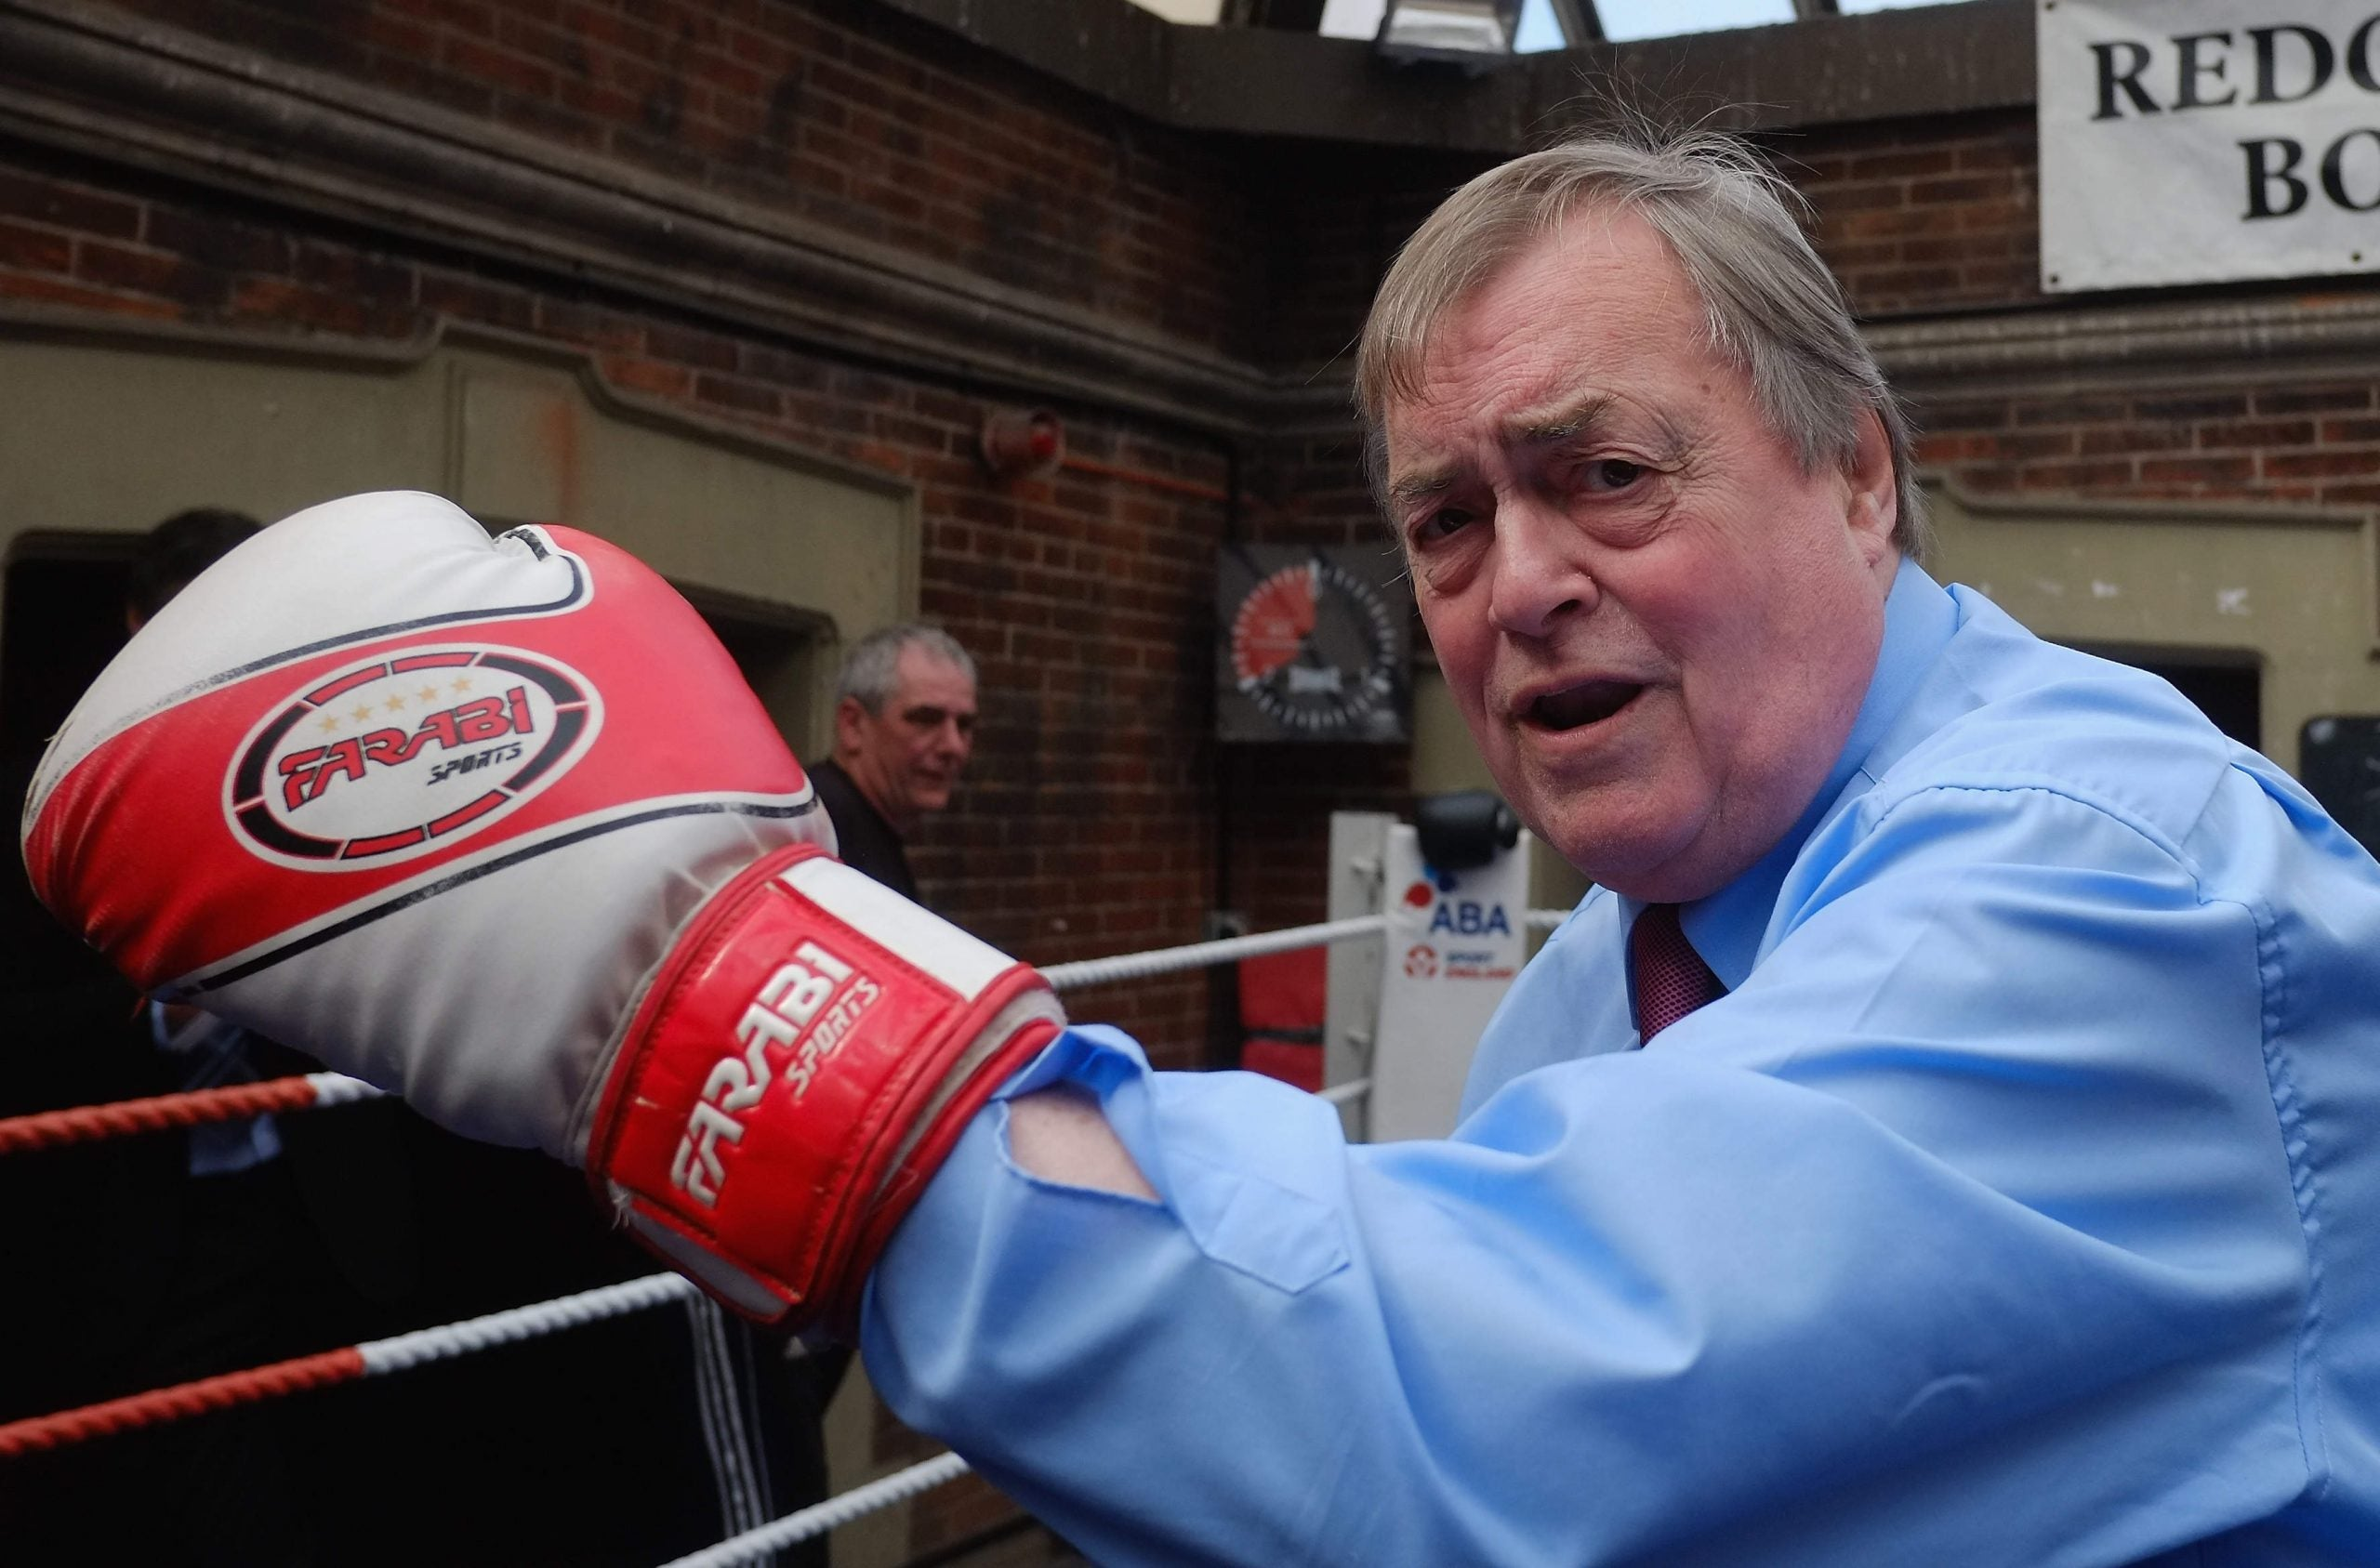 """John Prescott on Labour: """"This must be the worst operation I've ever seen"""""""